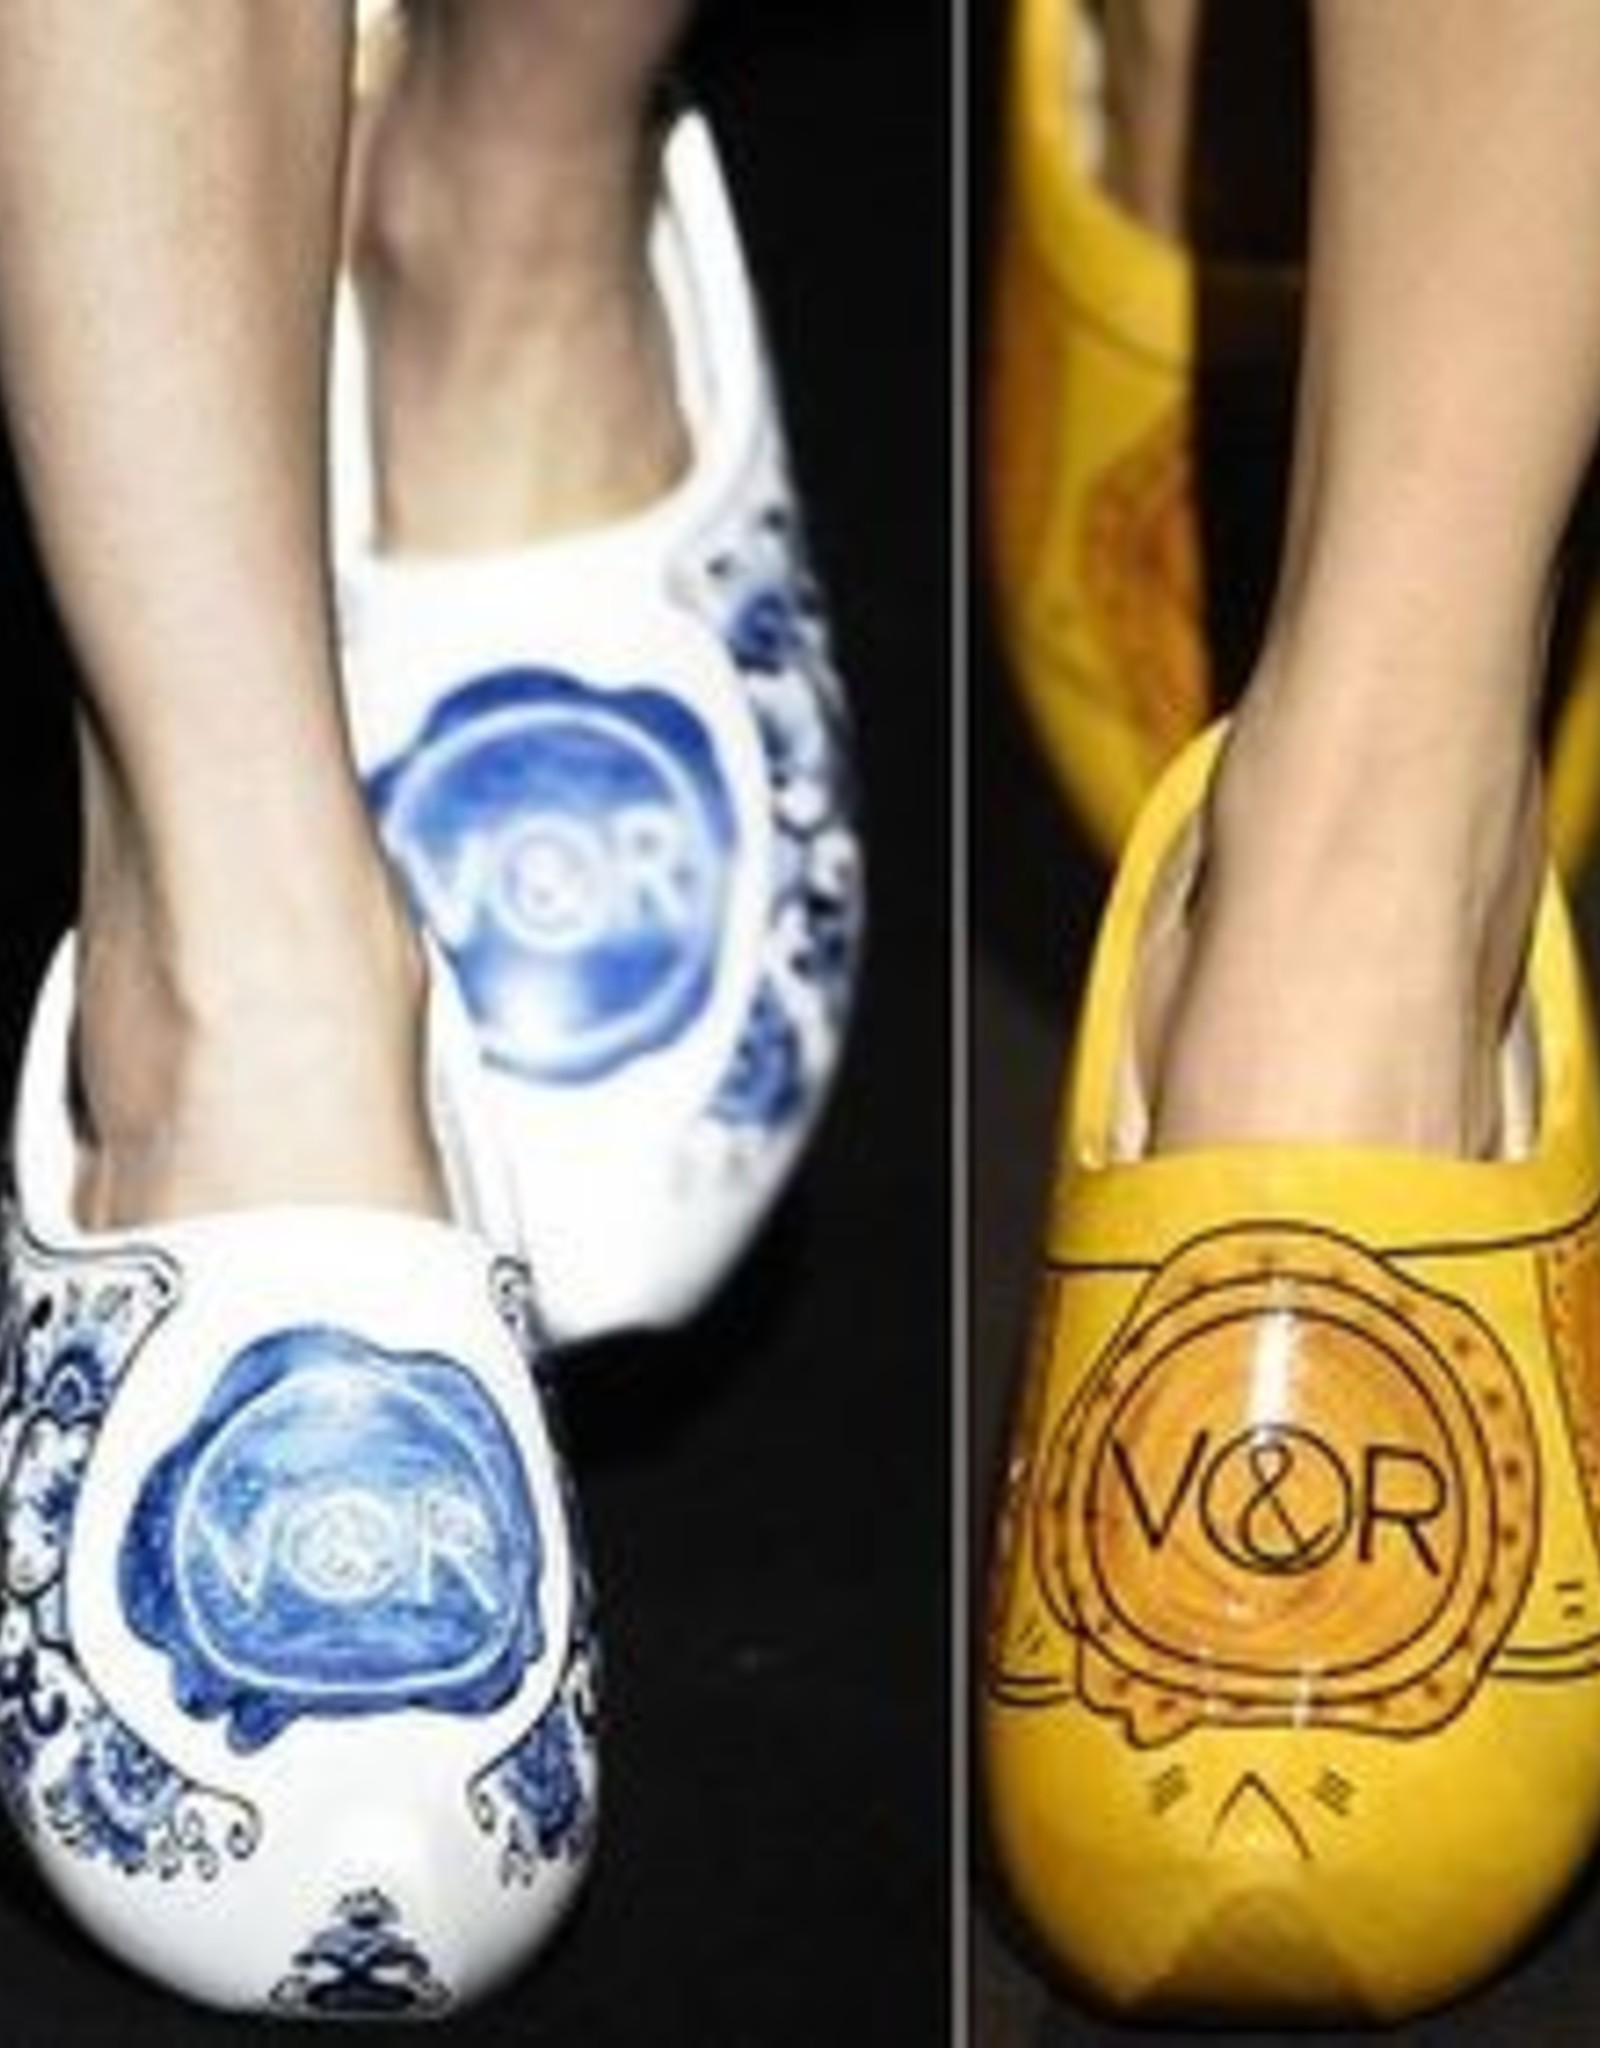 High heel wooden shoes with your own text/logo